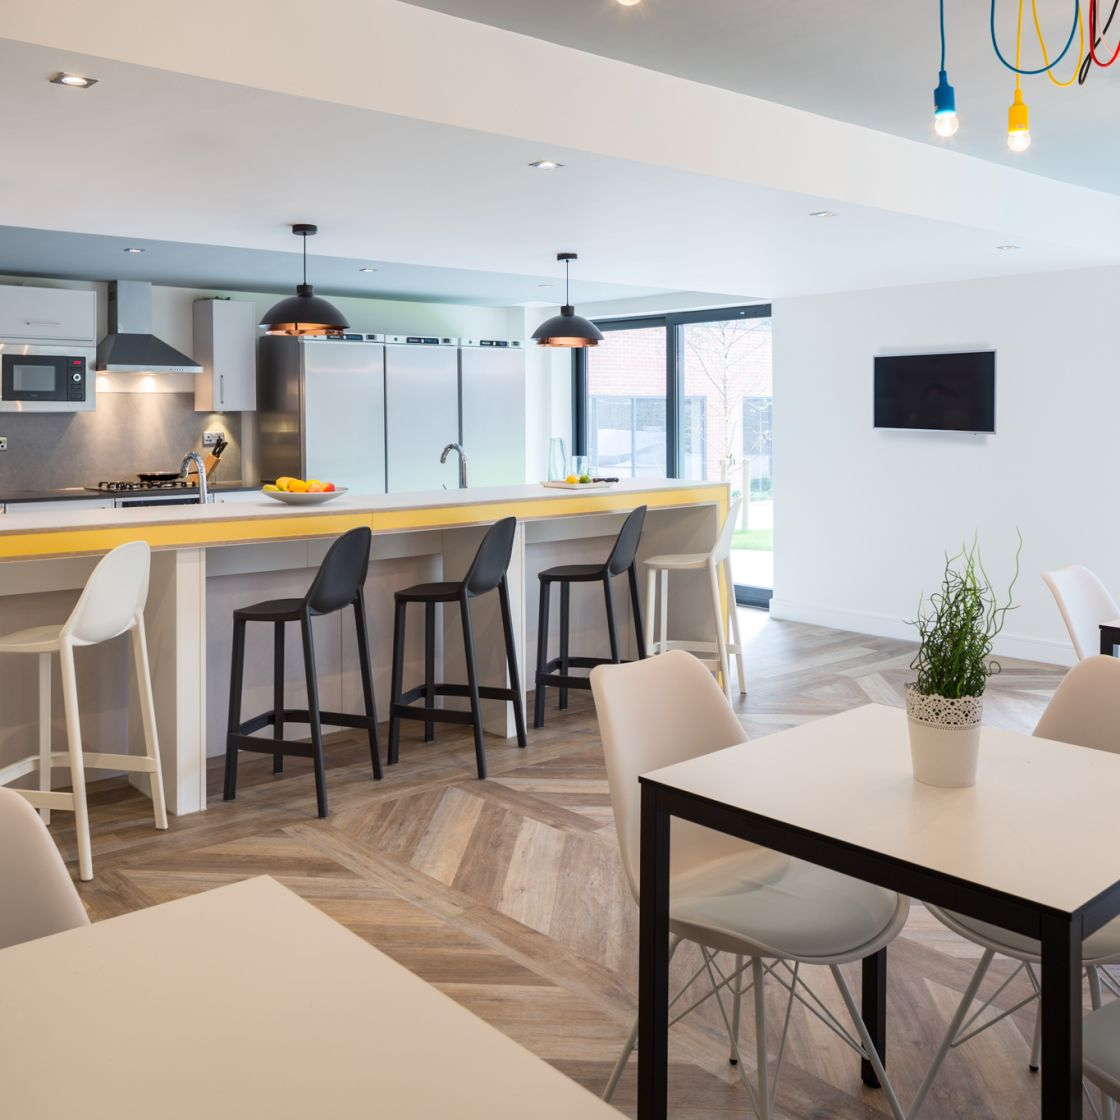 Mega Kitchen with Dining Tables and chairs at IconInc, The Glassworks. Student Accommodation in Leeds